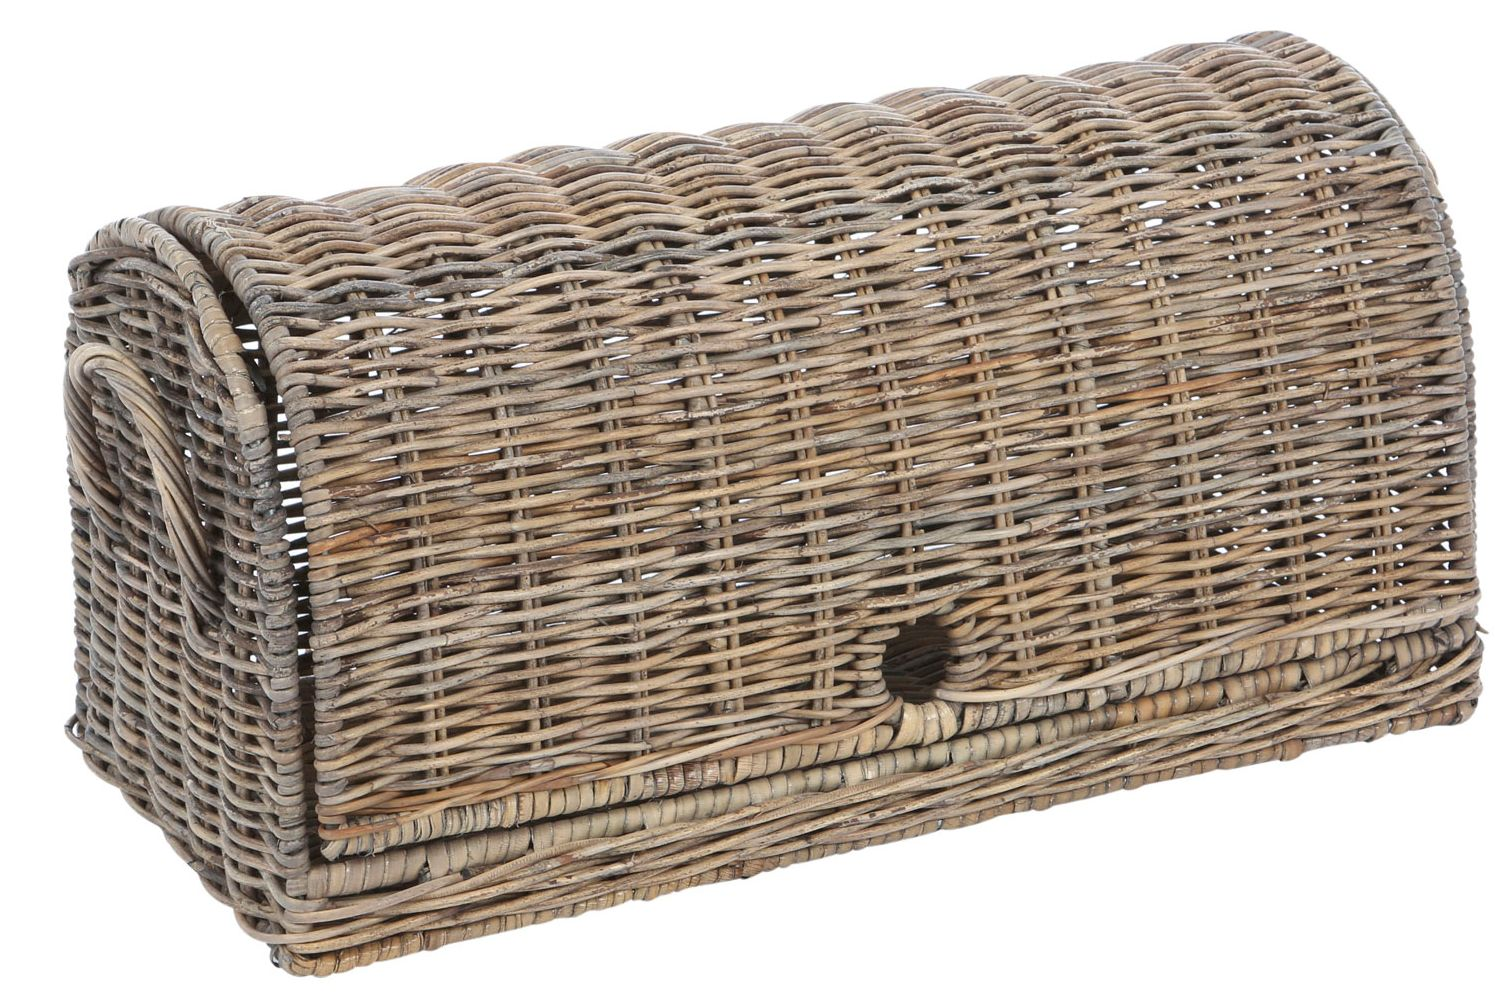 Rattan Brotkorb